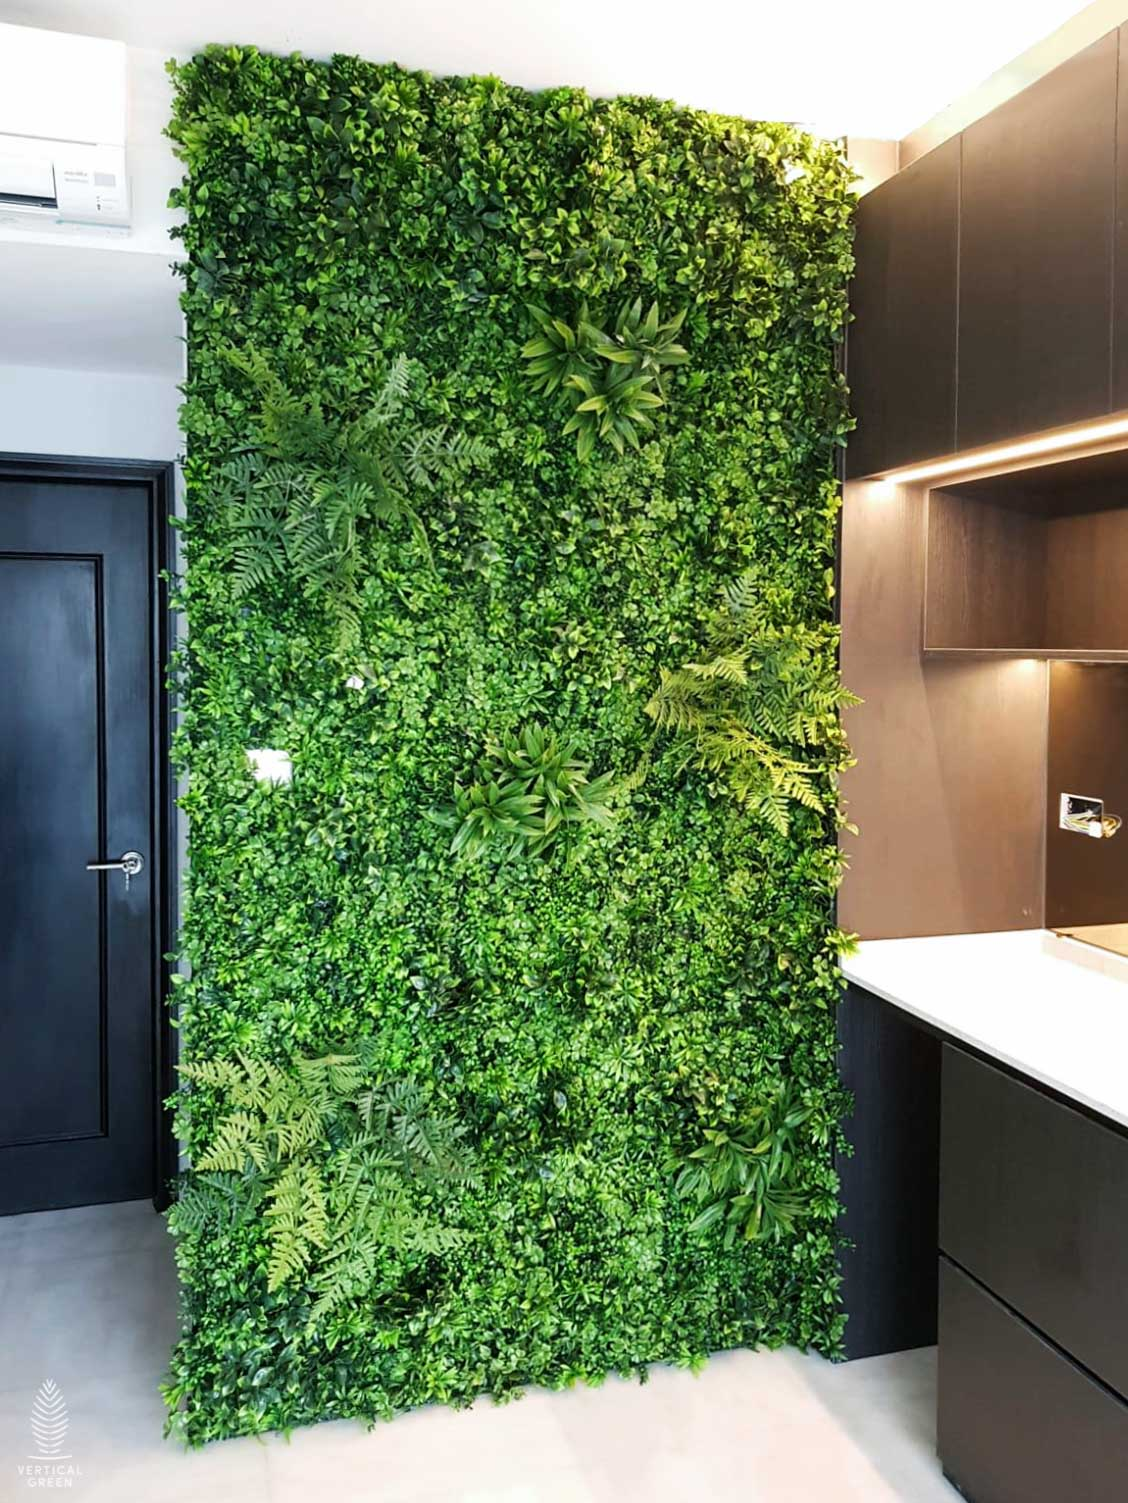 artificial green wall plant mat singapore indoors home